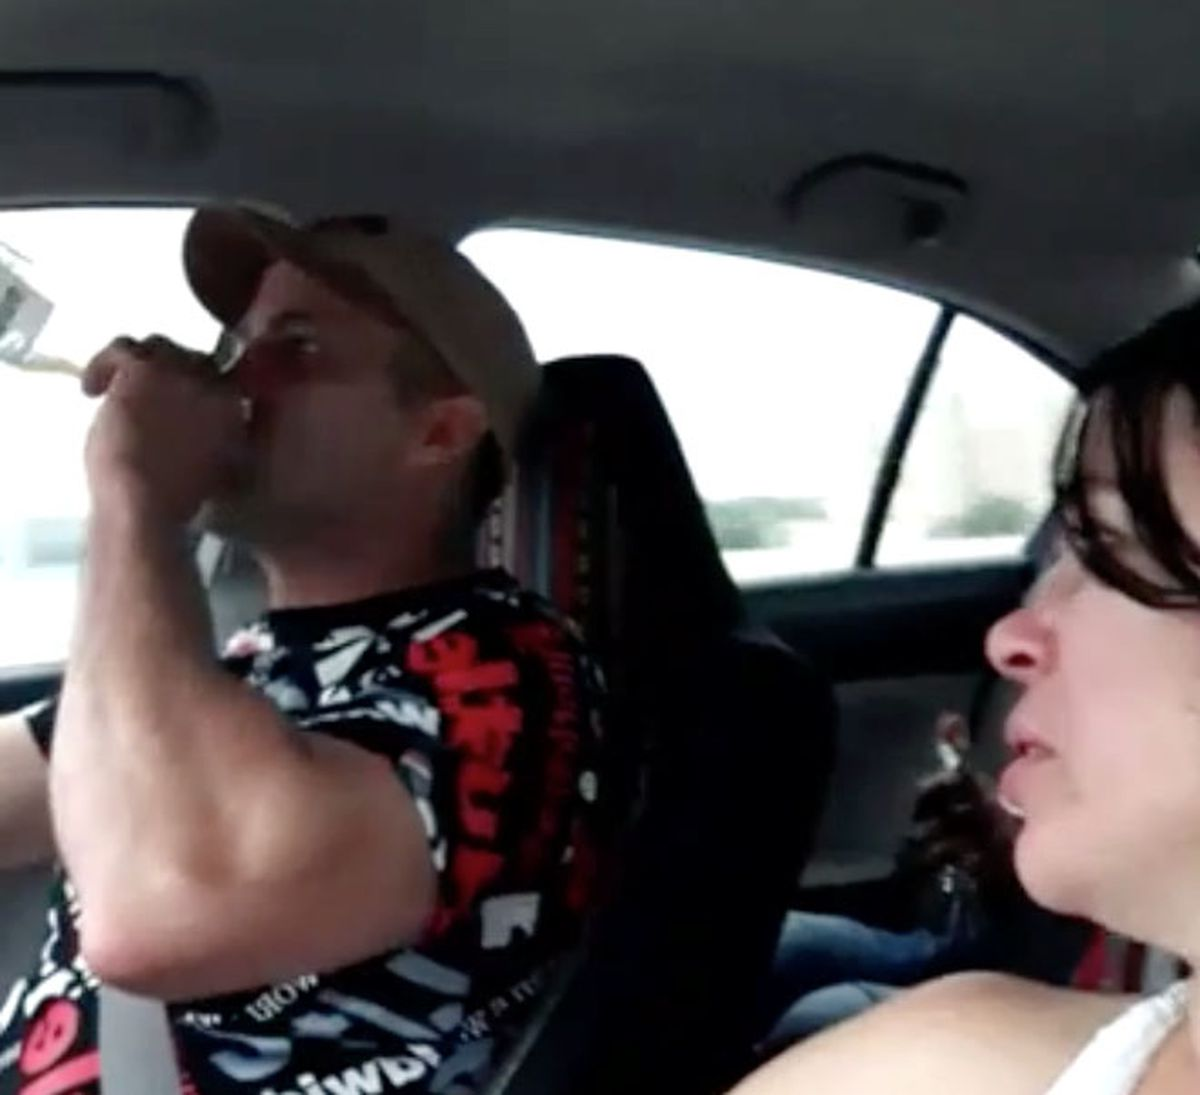 Texas man shares video drinking behind wheel moments before deadly car crash